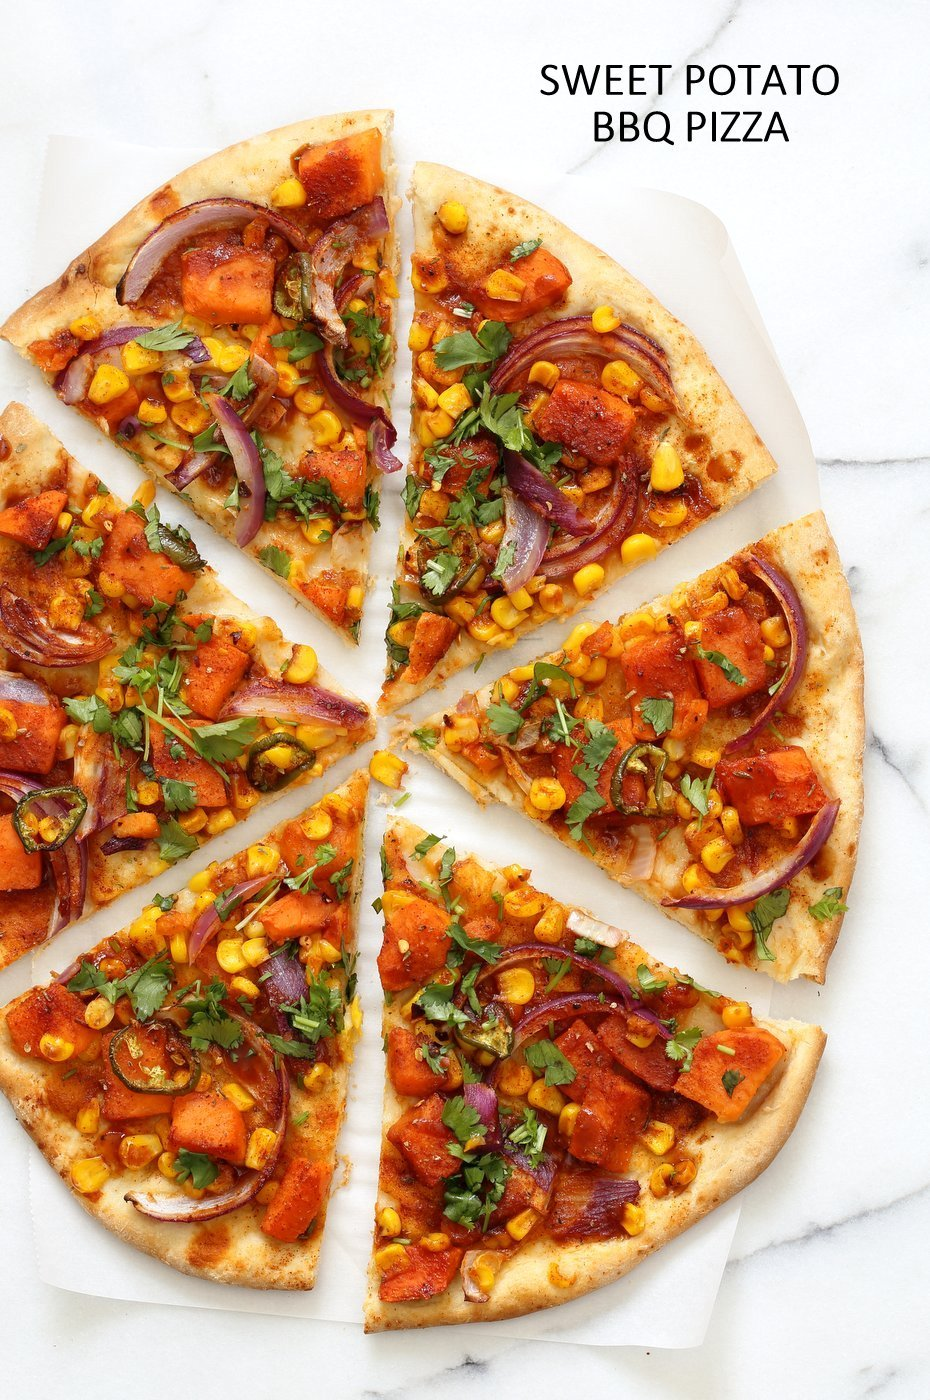 BBQ Sweet Potato Pizza. Easy Summer Pizza with Sweet Potato, Corn, Jalapeno tossed in homemade BBQ Seasoning and dressed in Barbecue sauce. Grill or bake or make into a quesadilla. Vegan Nut-free Recipe. Soy-free Gluten-free option | VeganRicha.com